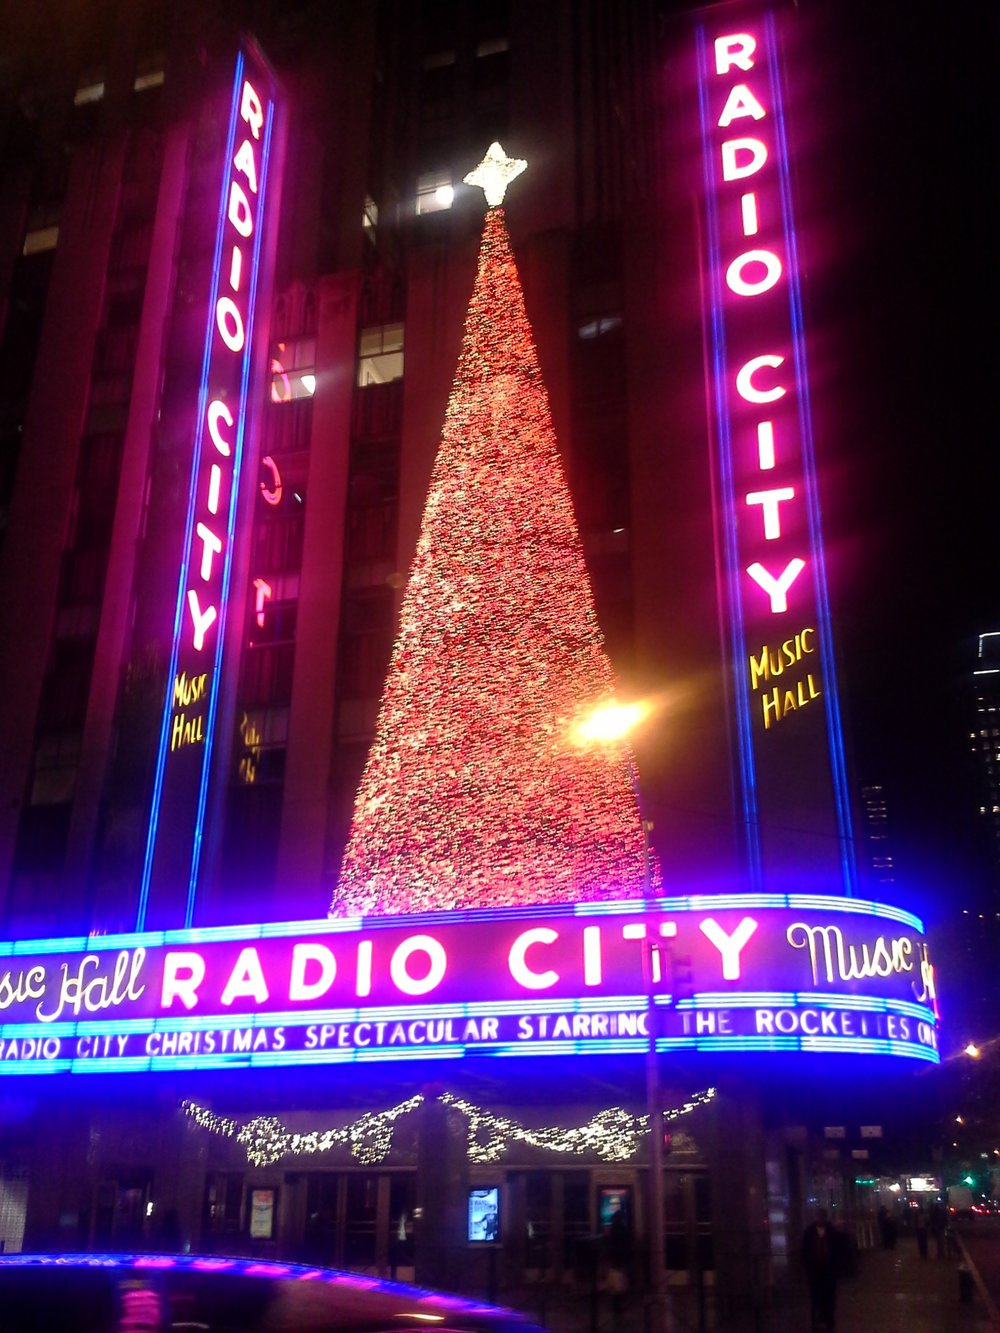 New York's no joke when it comes to Christmas